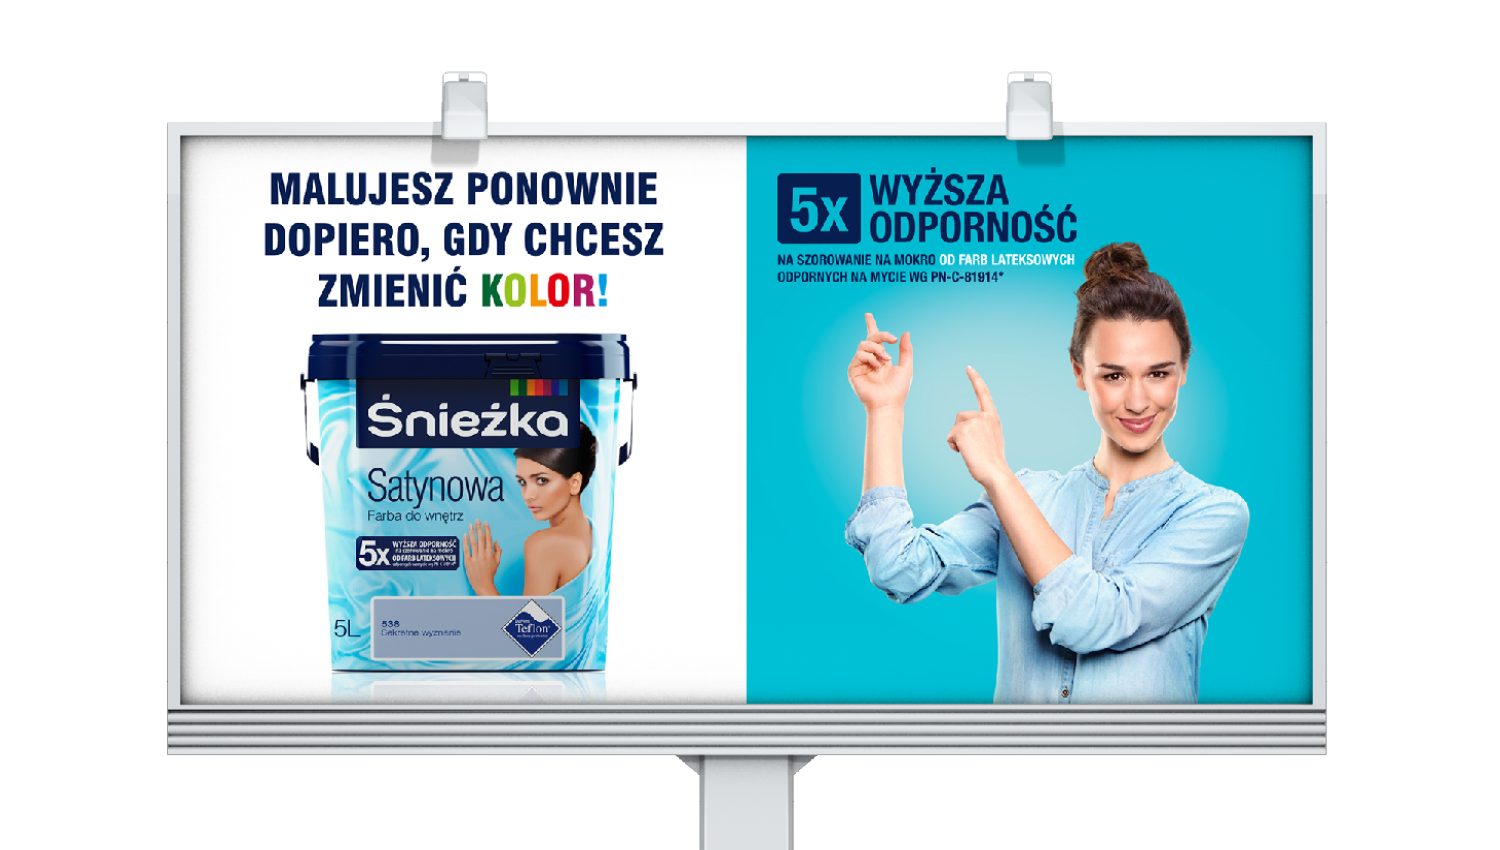 Eskadra - Śnieżka Satynowa  Resistant to 100 different kinds of stains - Śnieżka